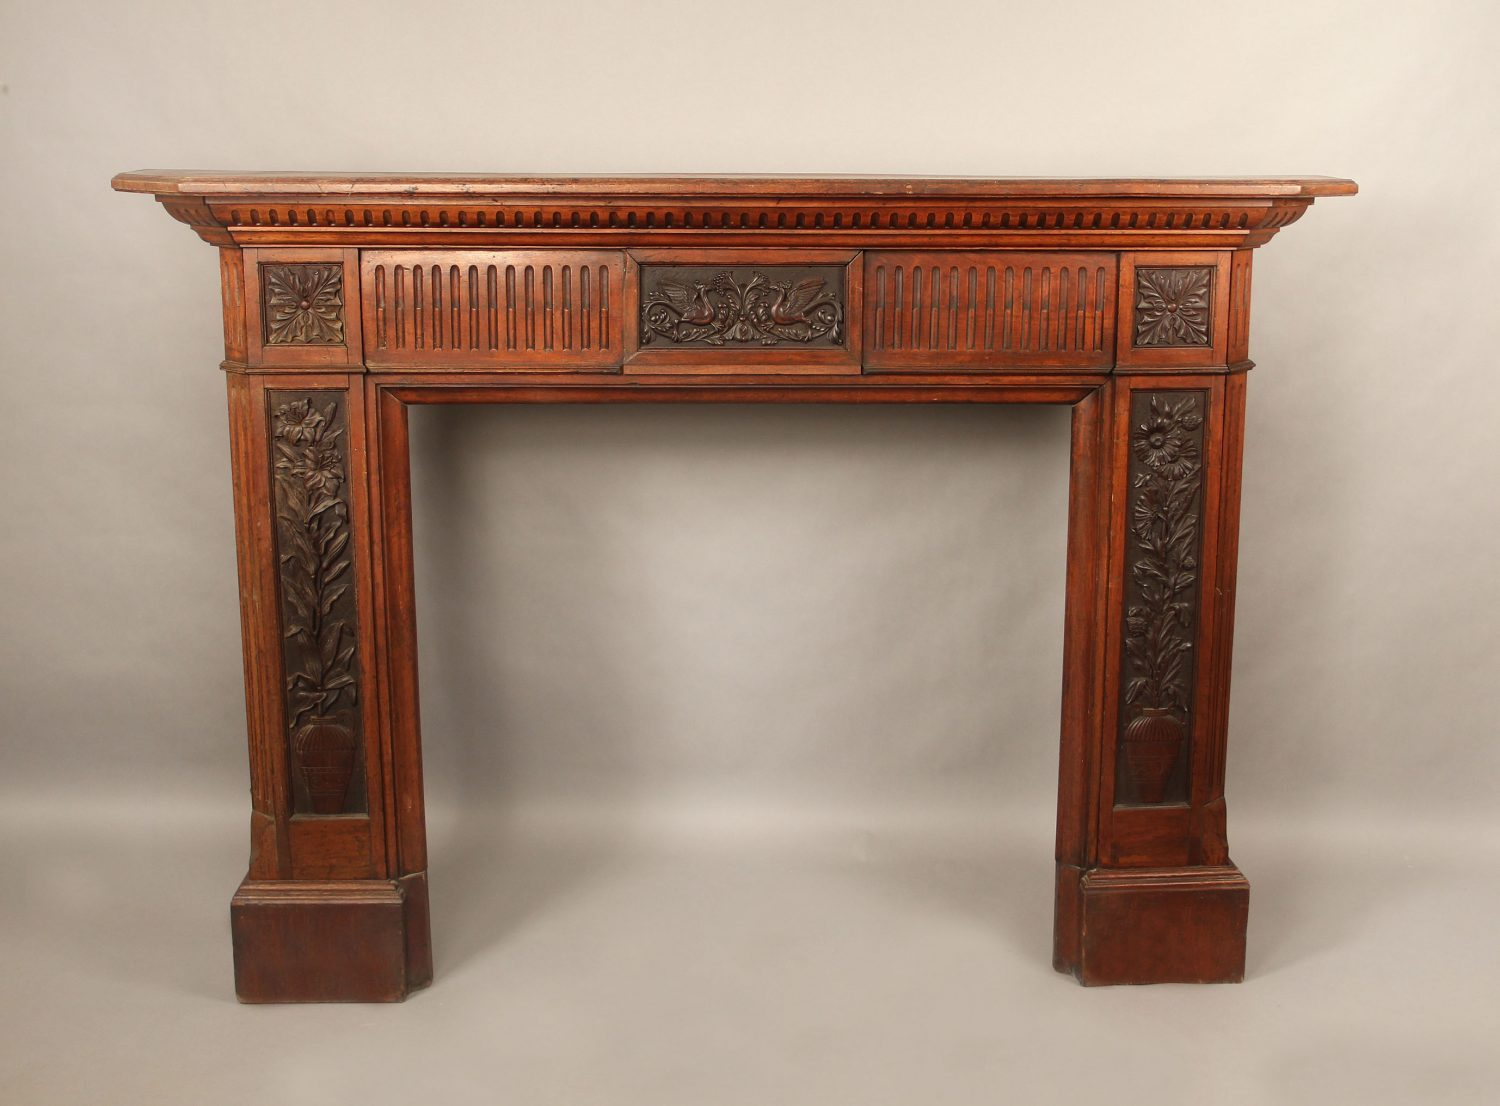 Late 19th Century Antique French Fireplace for Sale in NYC - Louis XVI Style Carved Wood Fireplace Surround